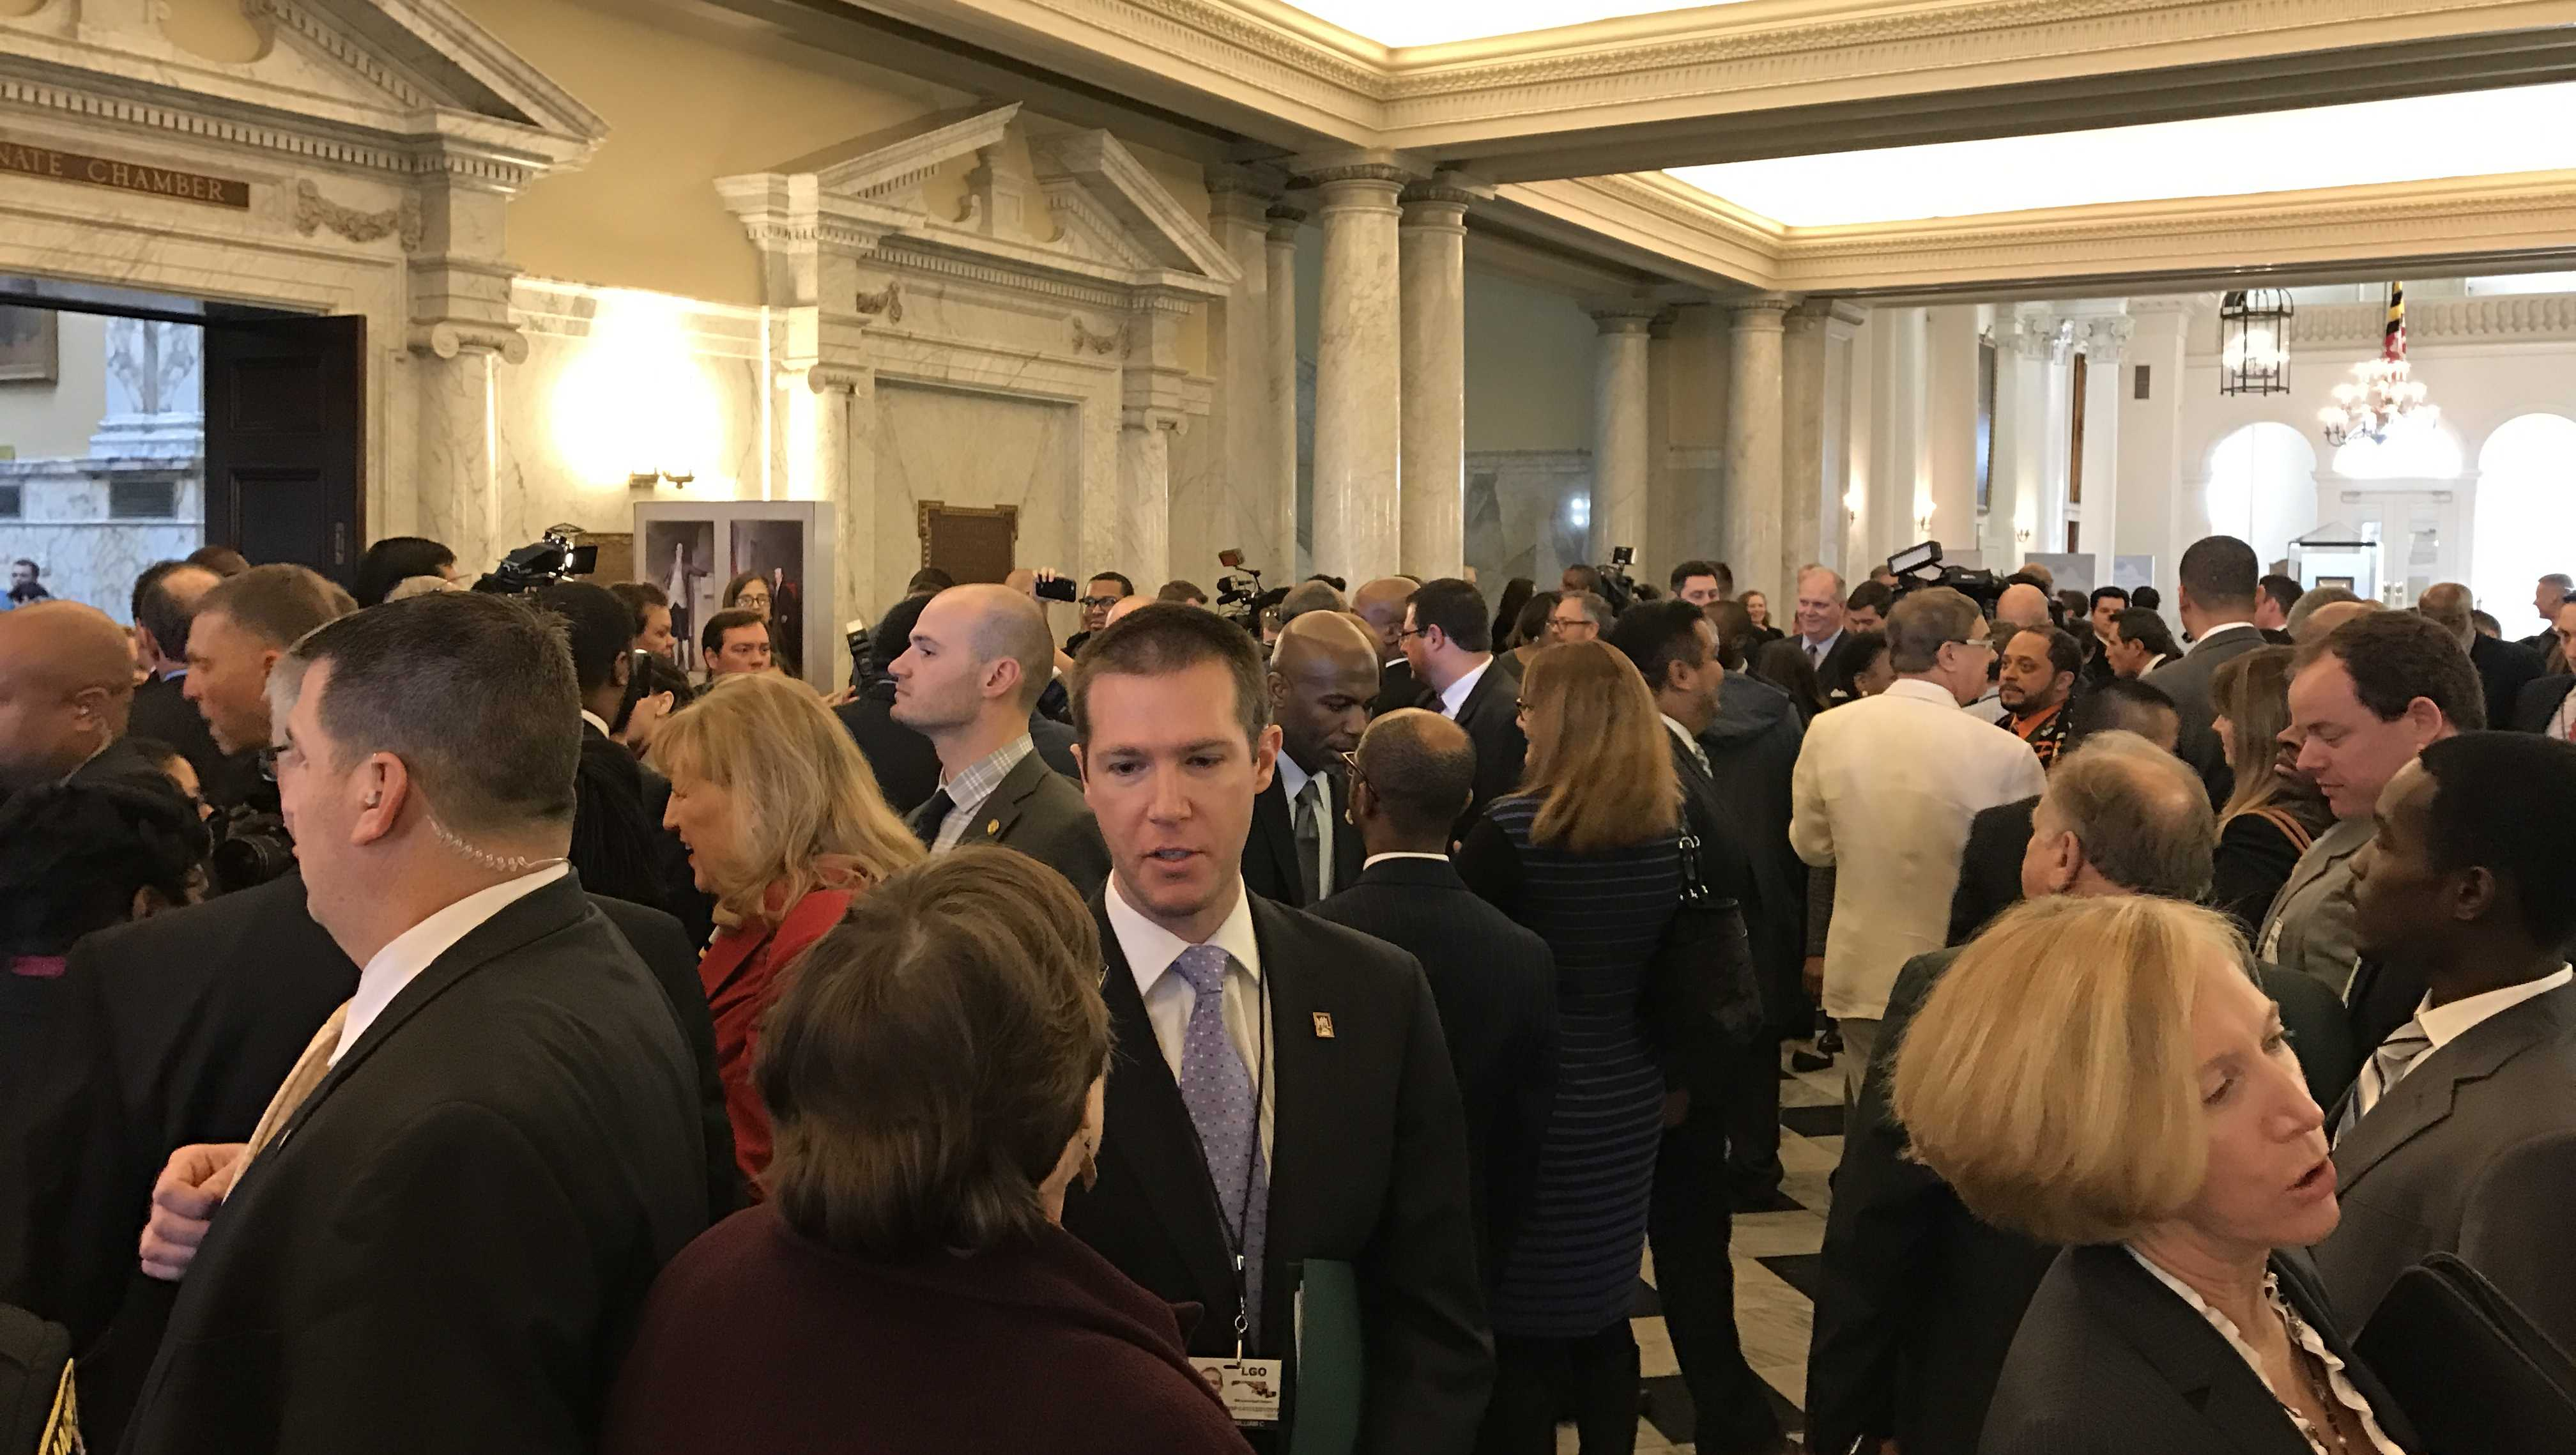 State House Hall packed start of session